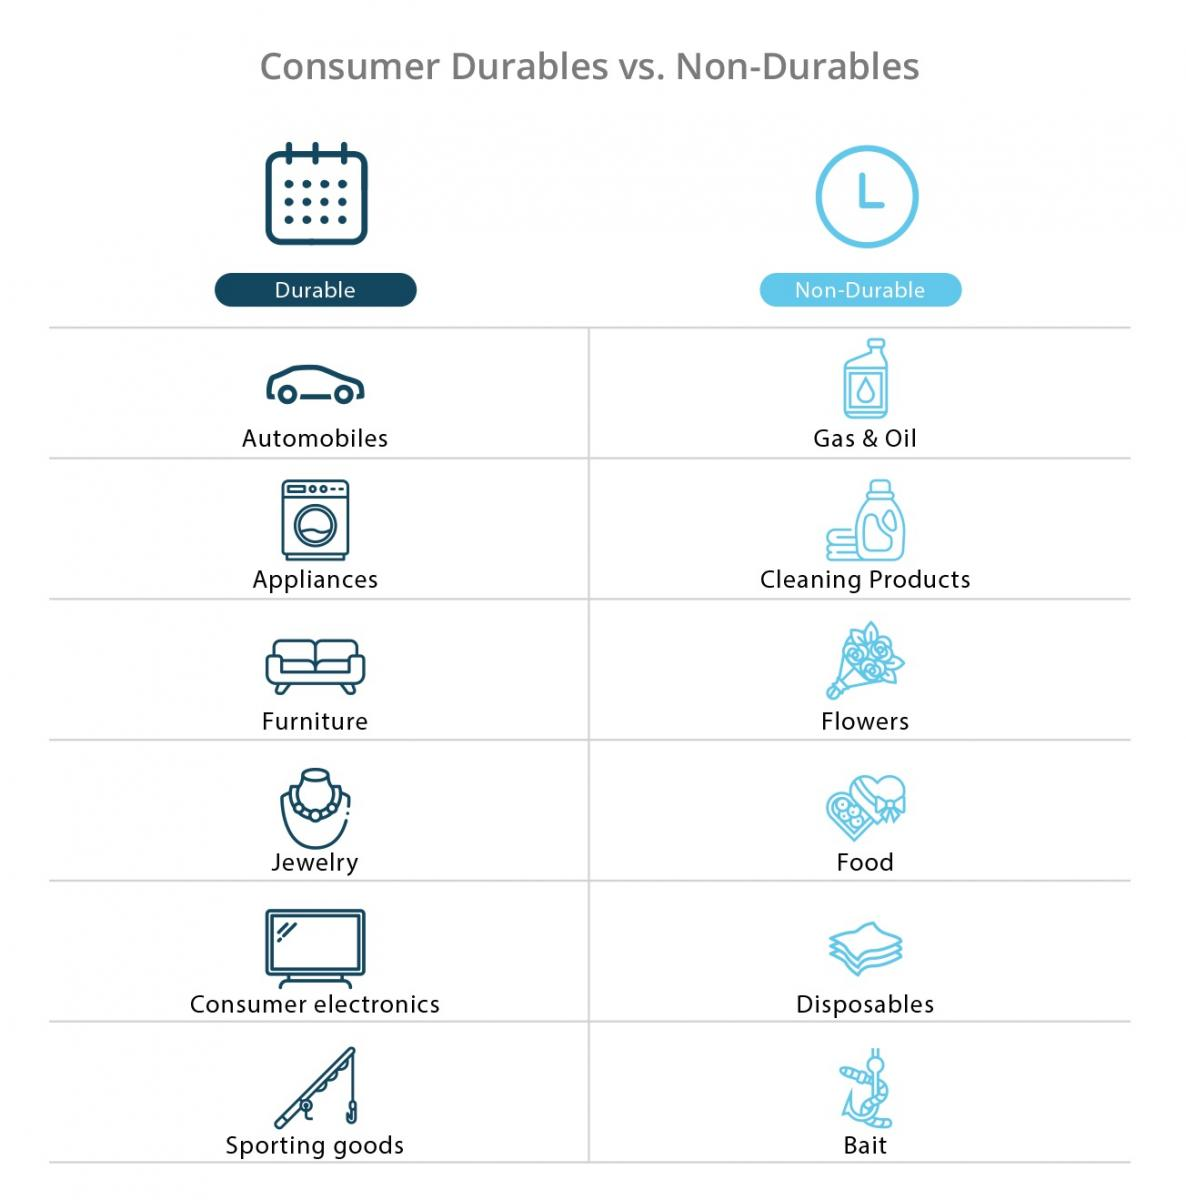 Examples of consumer durables